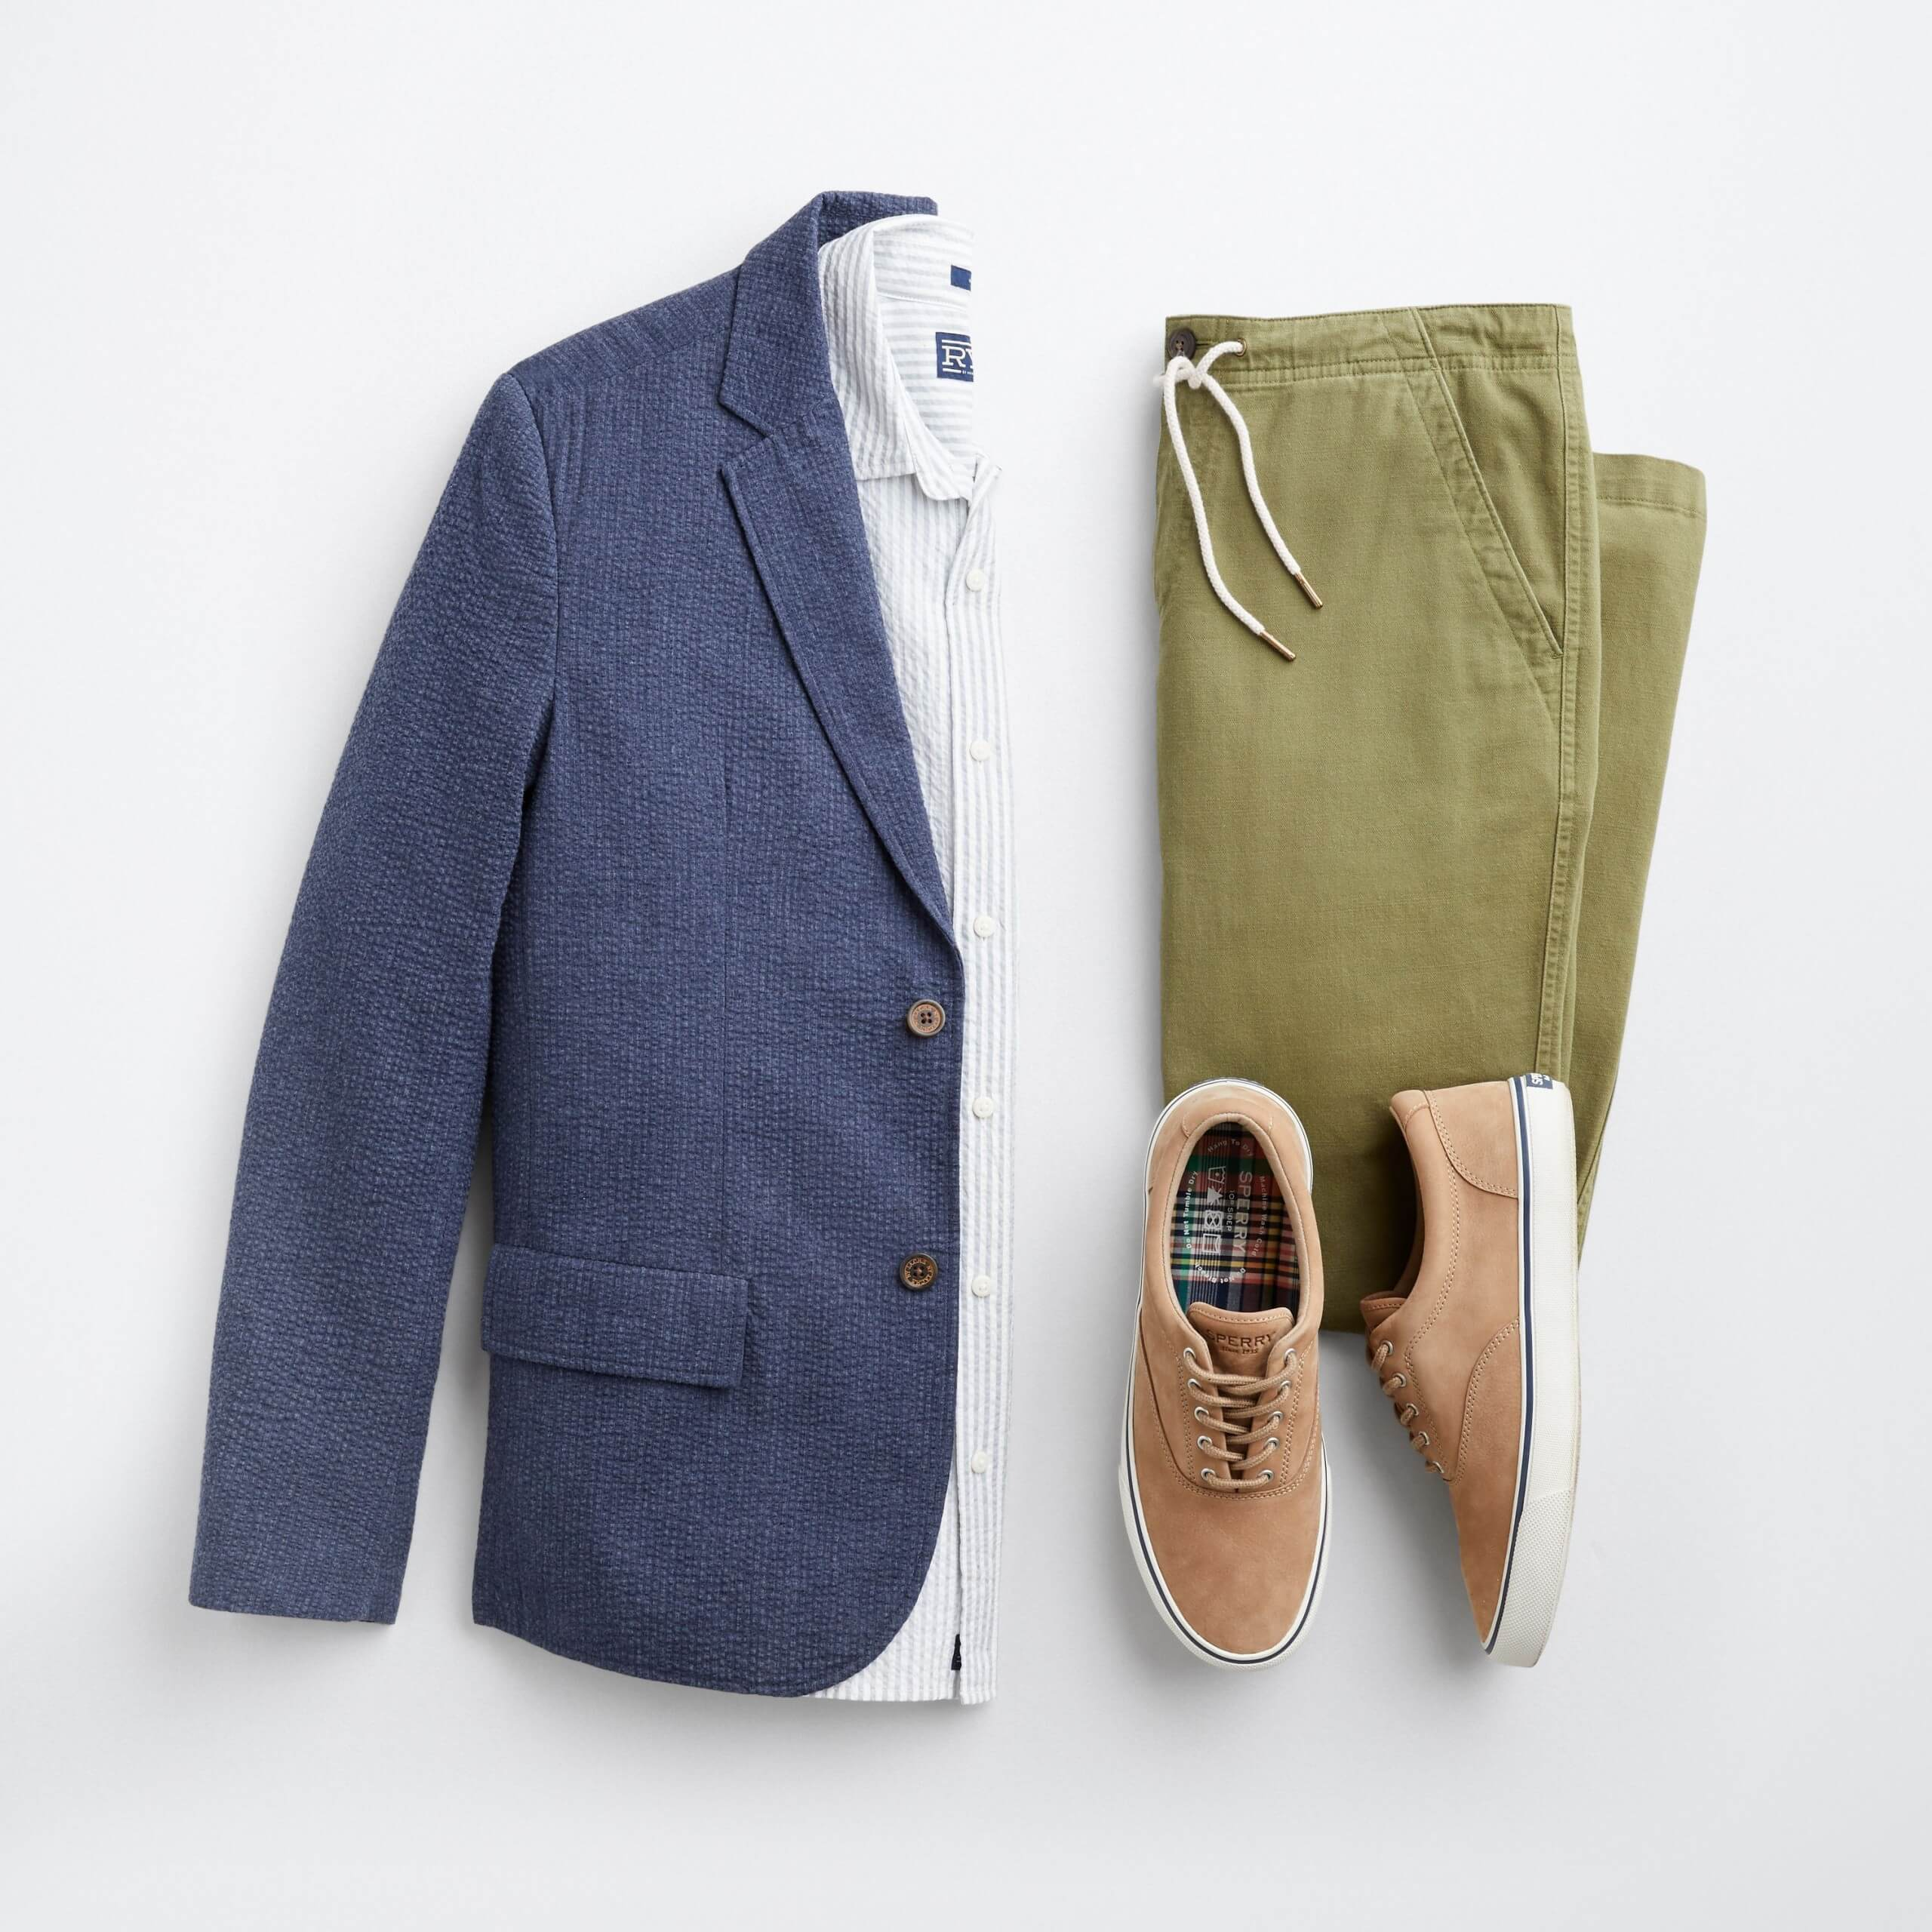 Stitch Fix Men's outfit laydown featuring navy blazer over white and blue striped button-down dress shirt, olive green pants and tan leather sneakers.